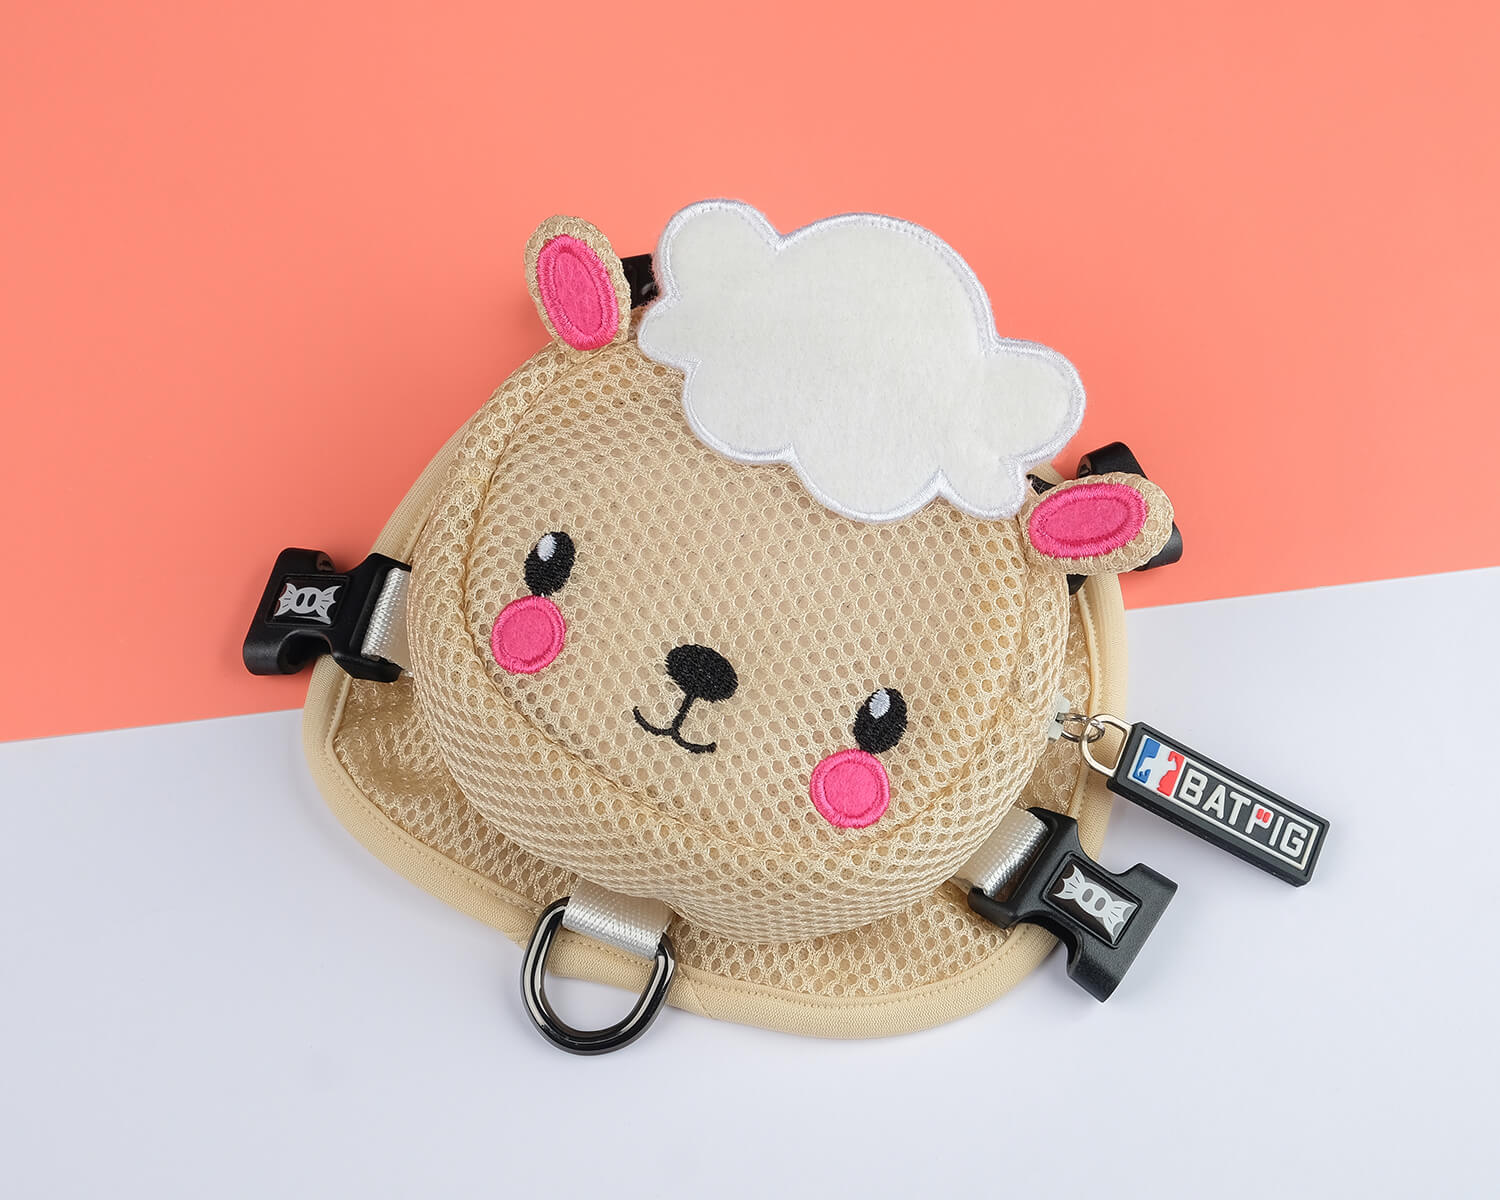 BATPIG Backpack Harness Cloudy Lamb Collection